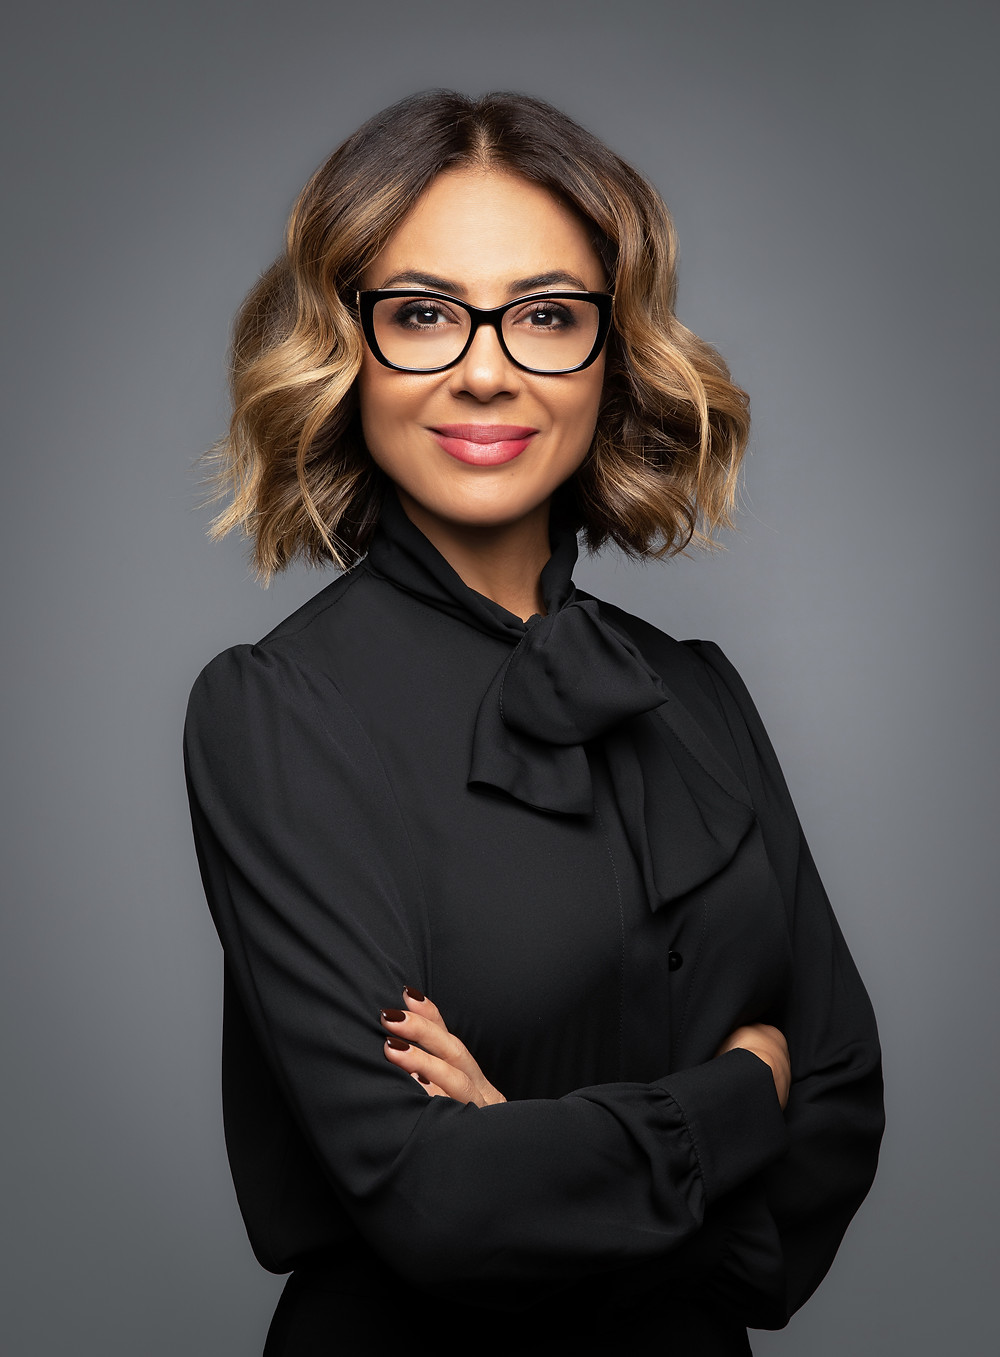 Lady posing for a corporate headshot